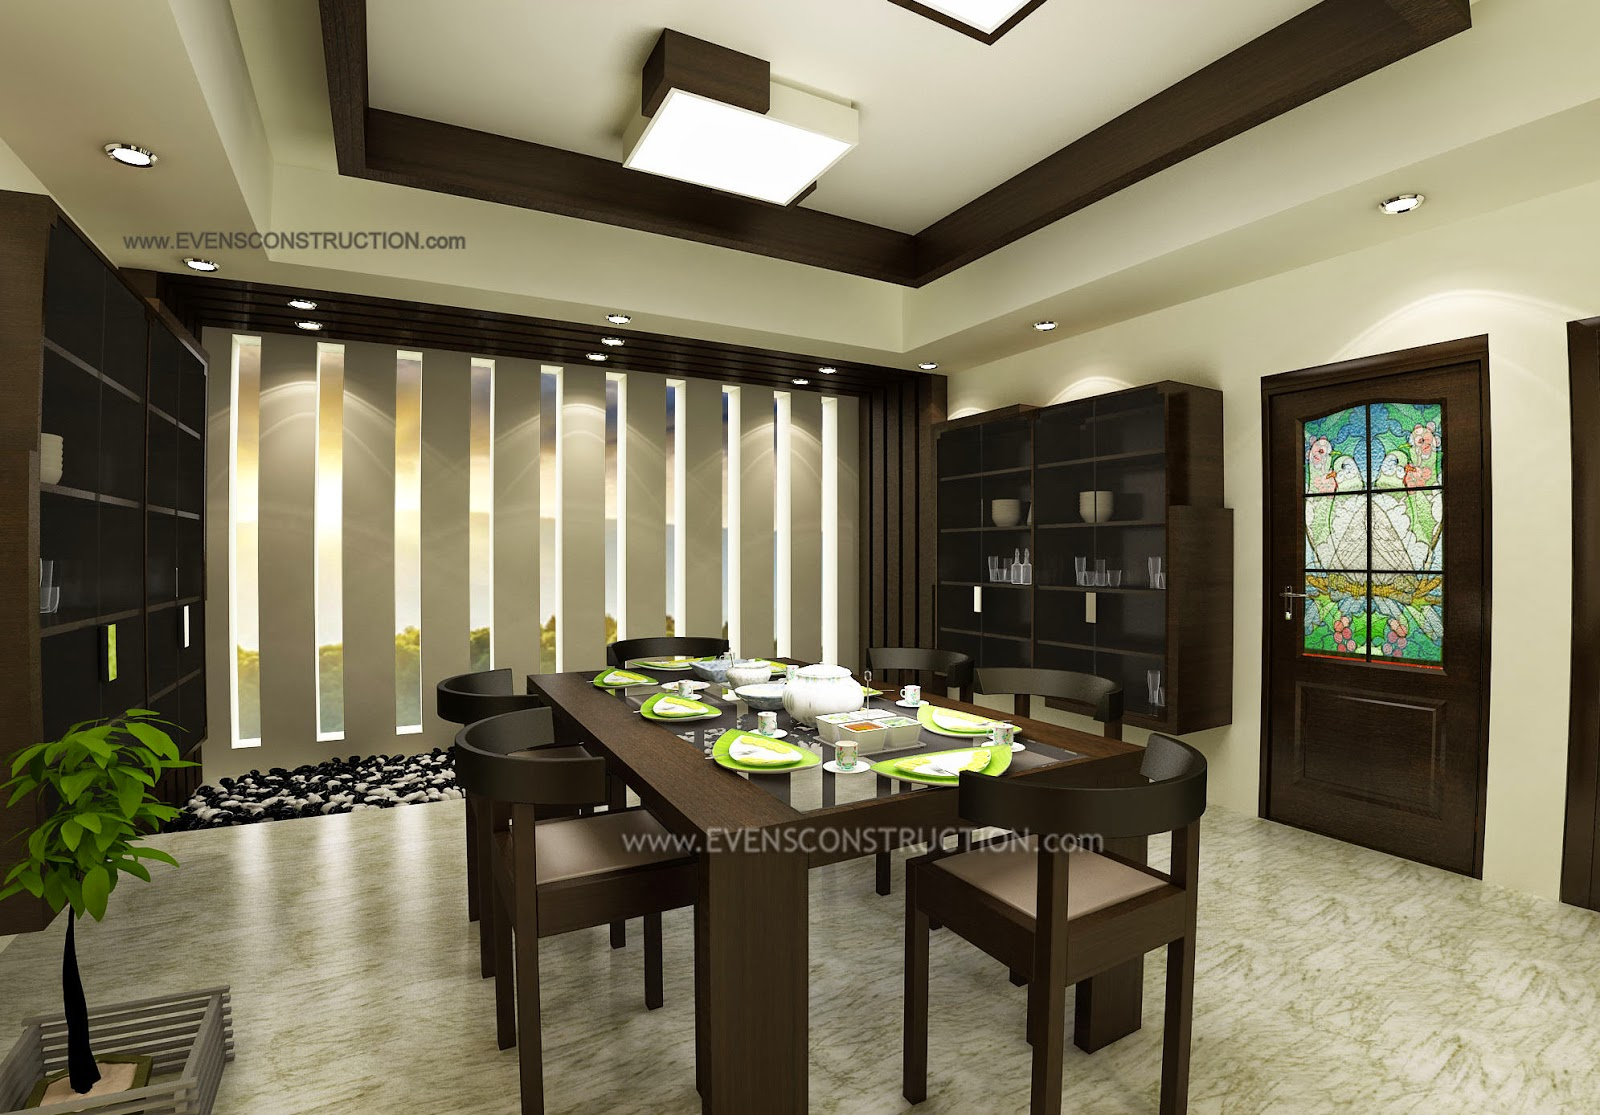 Evens Construction Pvt Ltd: Modern dining room